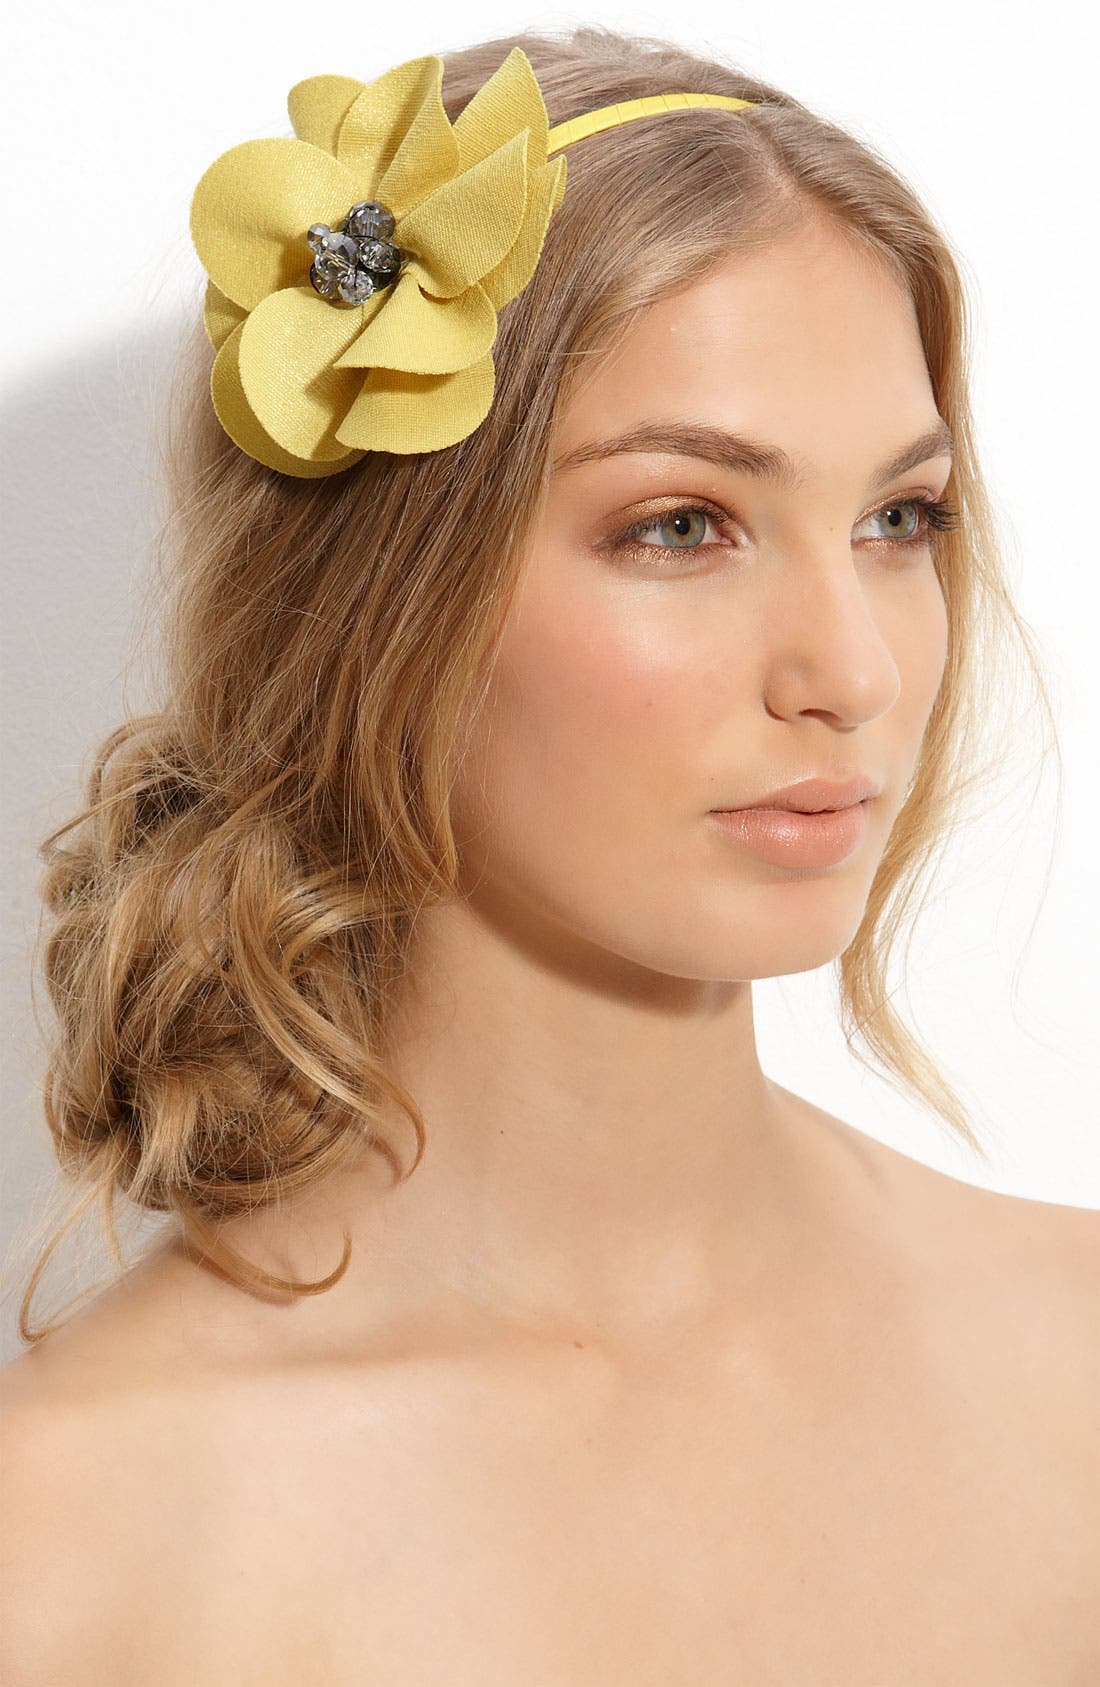 Accessories 'Lovely Lady' Flower Headband,                         Main,                         color, Yellow